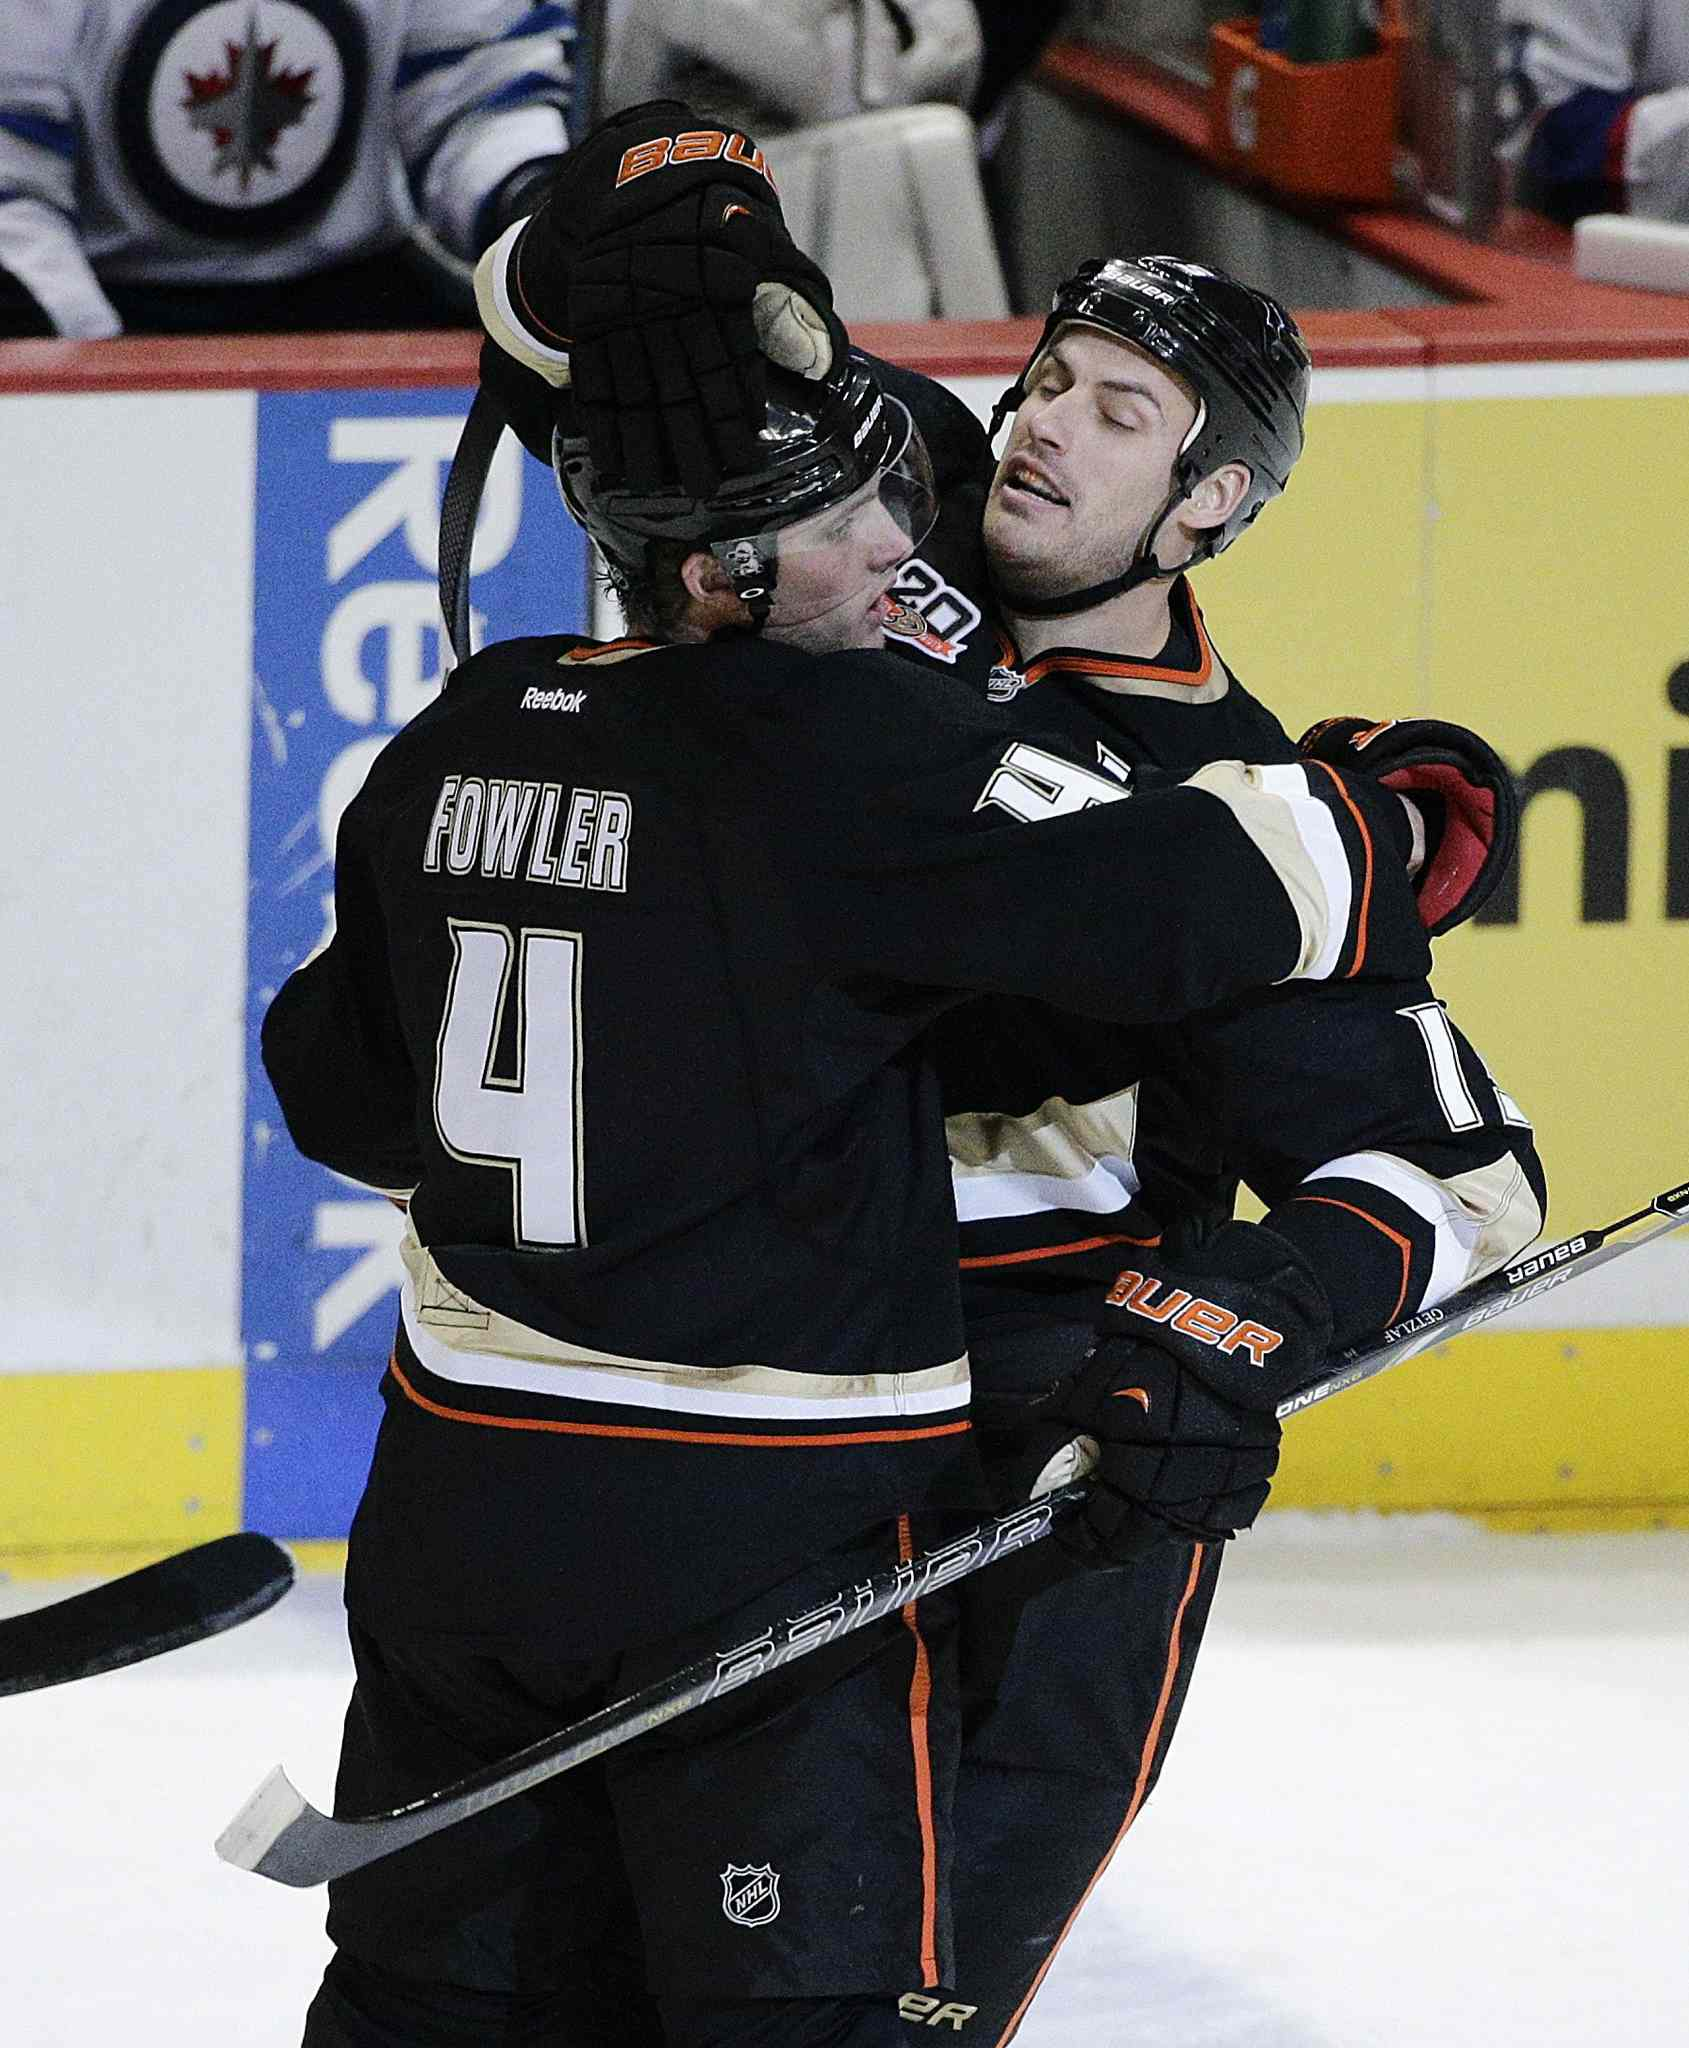 Anaheim Ducks' Cam Fowler, left, and Ryan Getzlaf celebrate a goal by Fowler during the first period of Tuesday's game against the Winnipeg Jets.